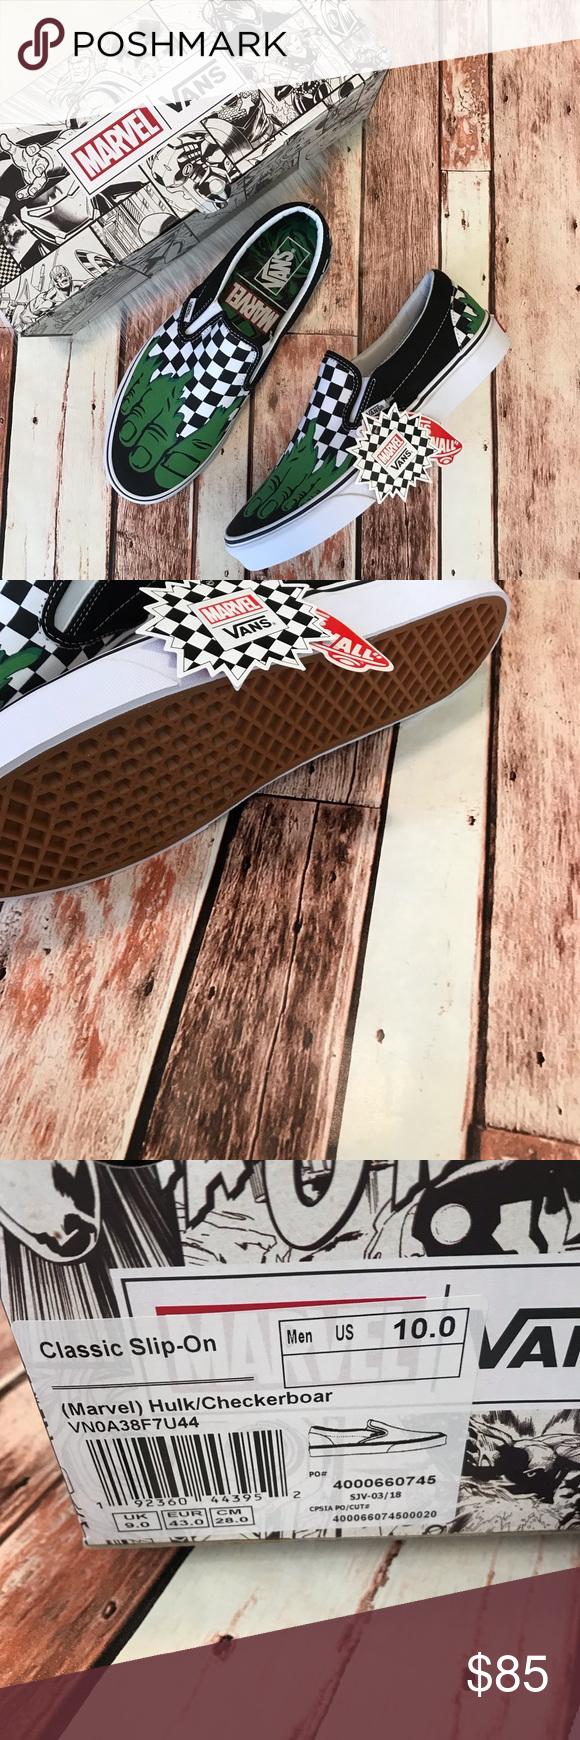 4f1e8be6b2 Vans x Marvel Classic Slip-Ons Checkerboard Hulk Vans x Marvel Classic Slip-Ons  Checkerboard Hulk Print . New in Box. Size 10 . Limited Edition.